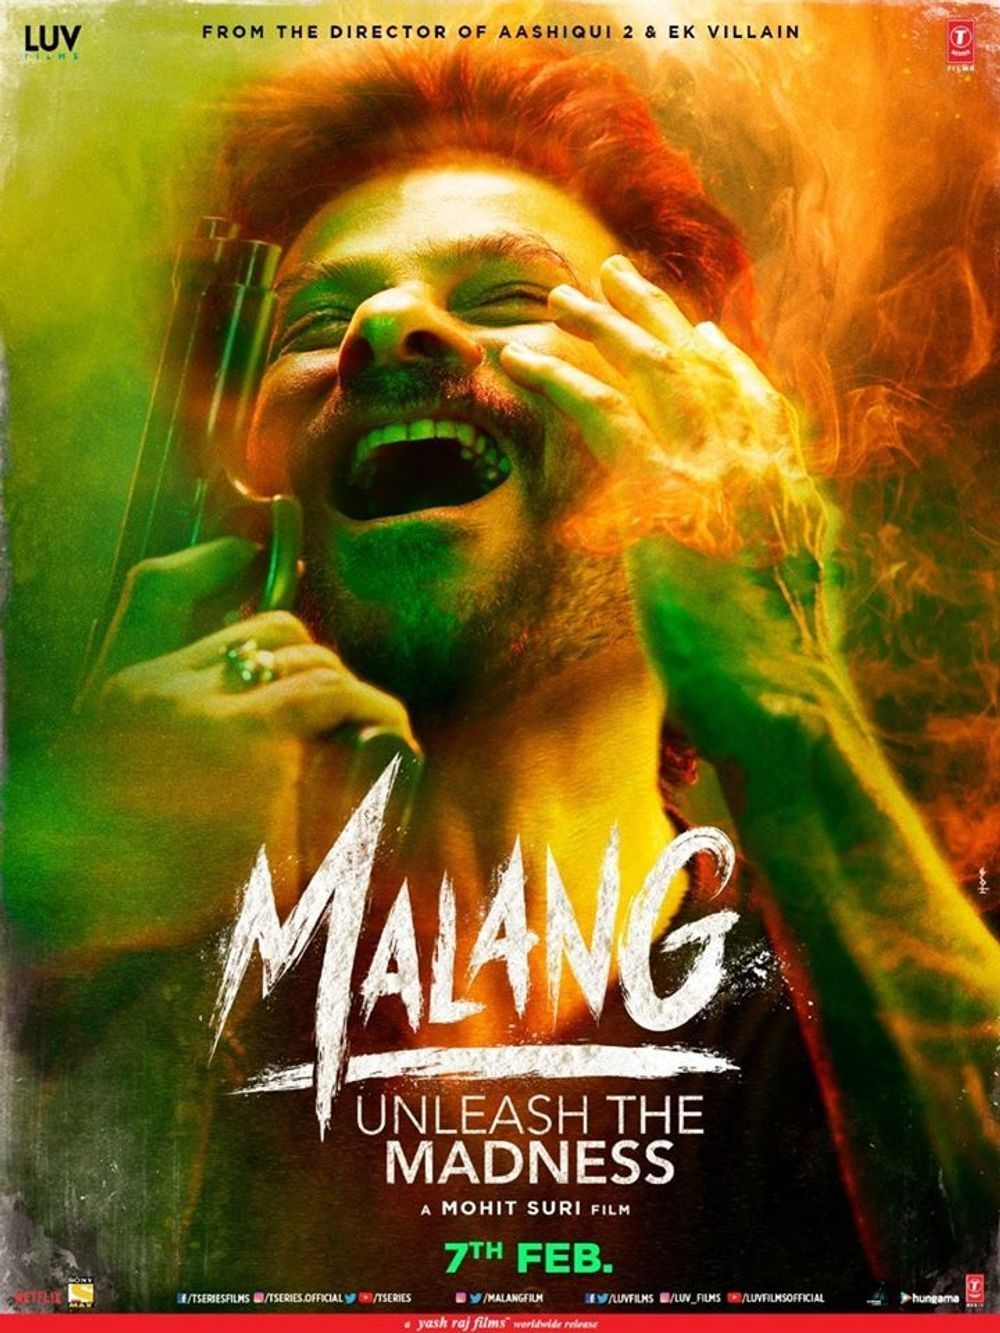 6 Malang Movie Latest Hd Photos Posters Wallpapers Download 1080p 4k 1000x1333 2020